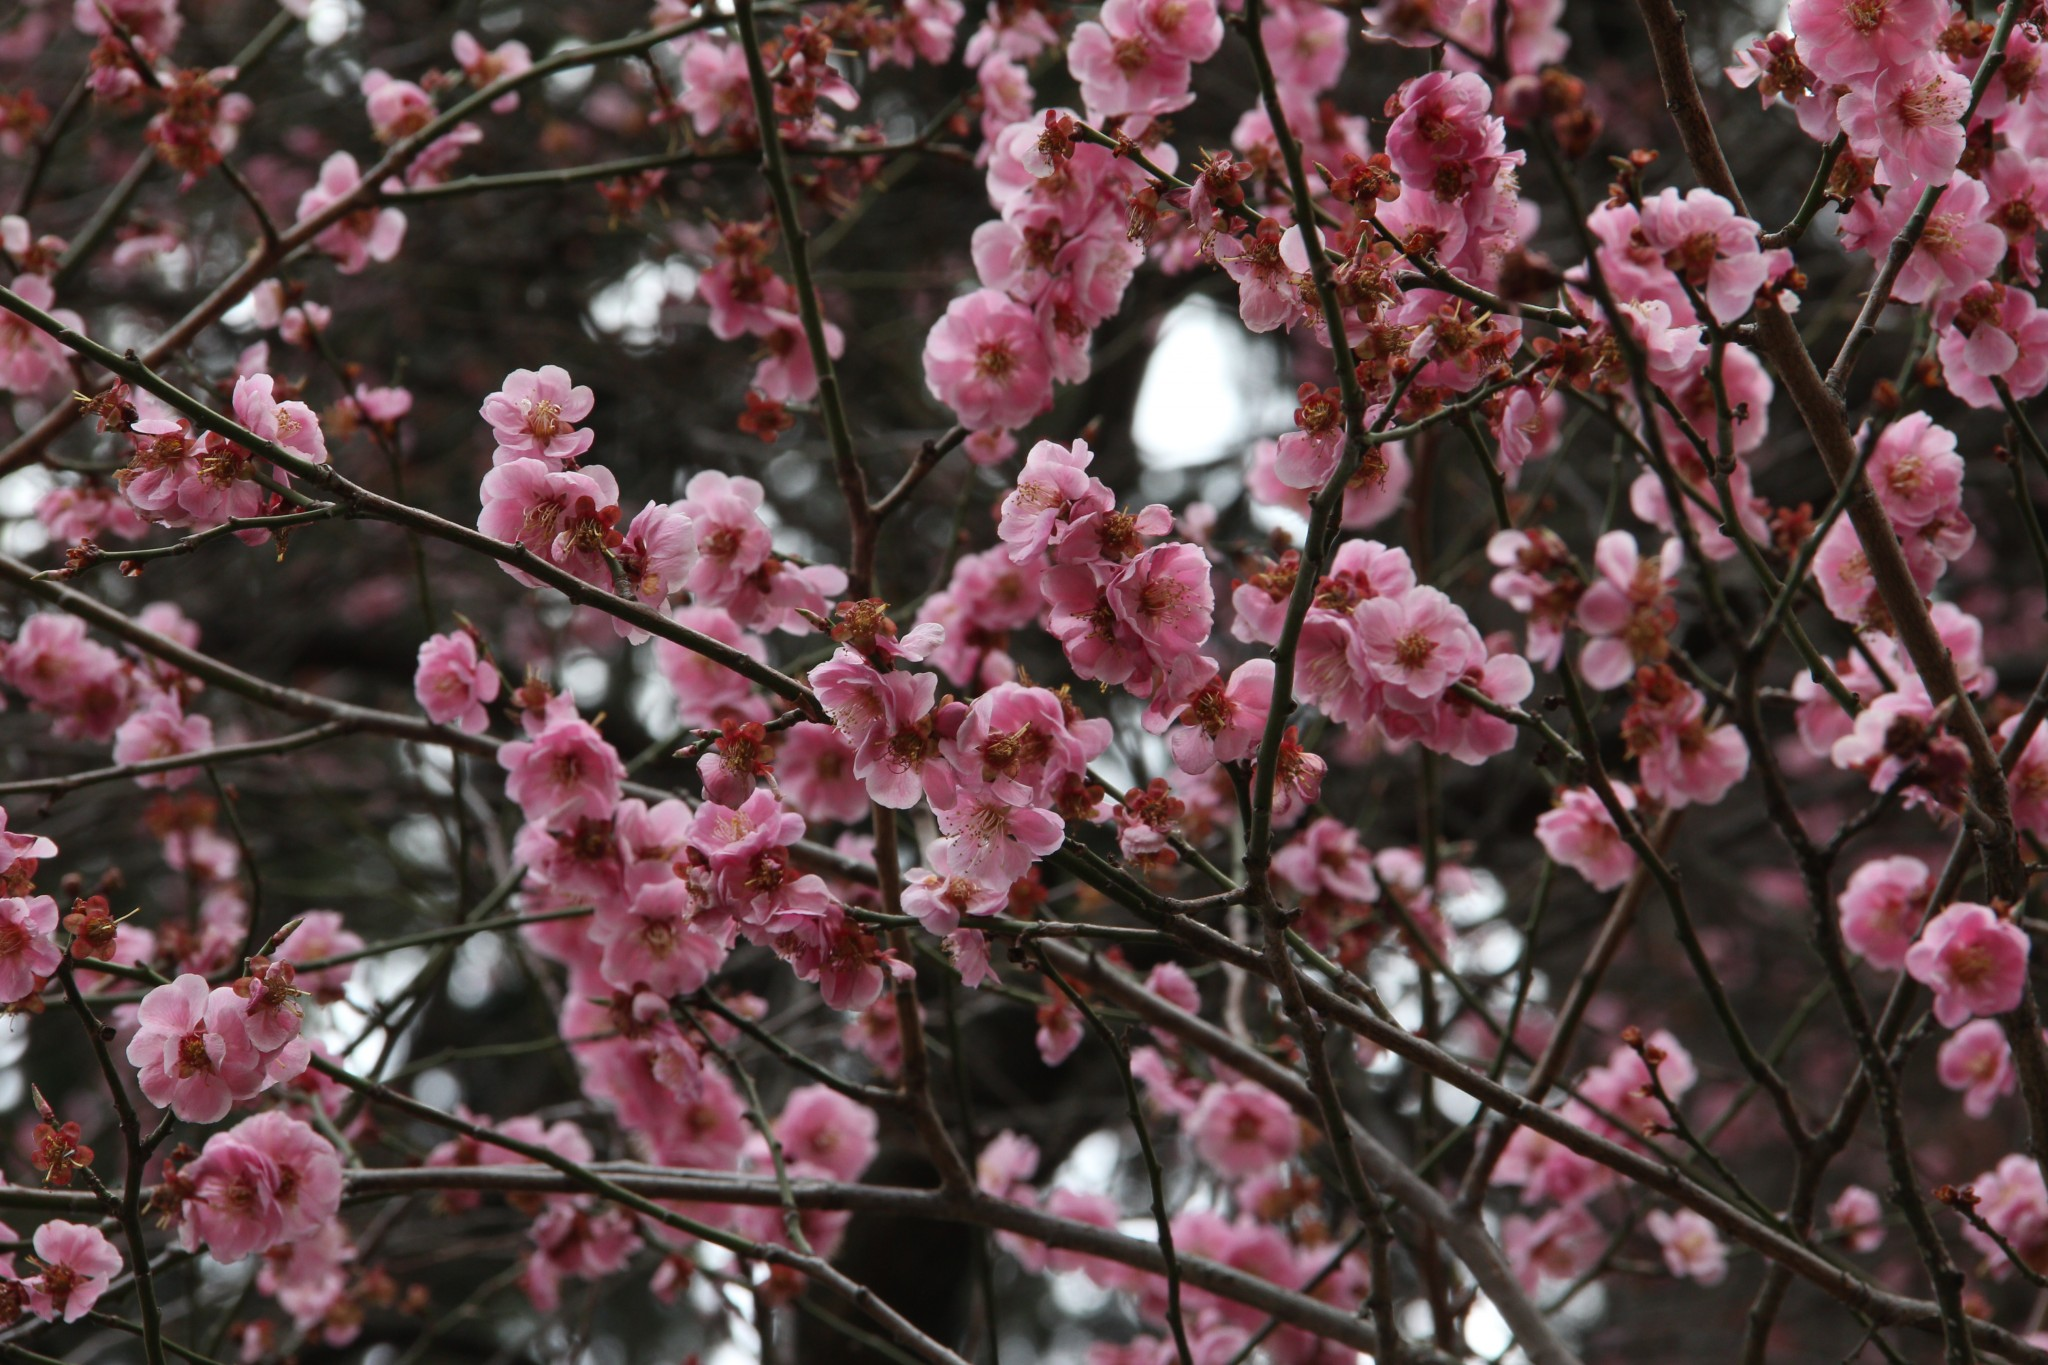 Is there still time for hanami (cherry blossom viewing)?